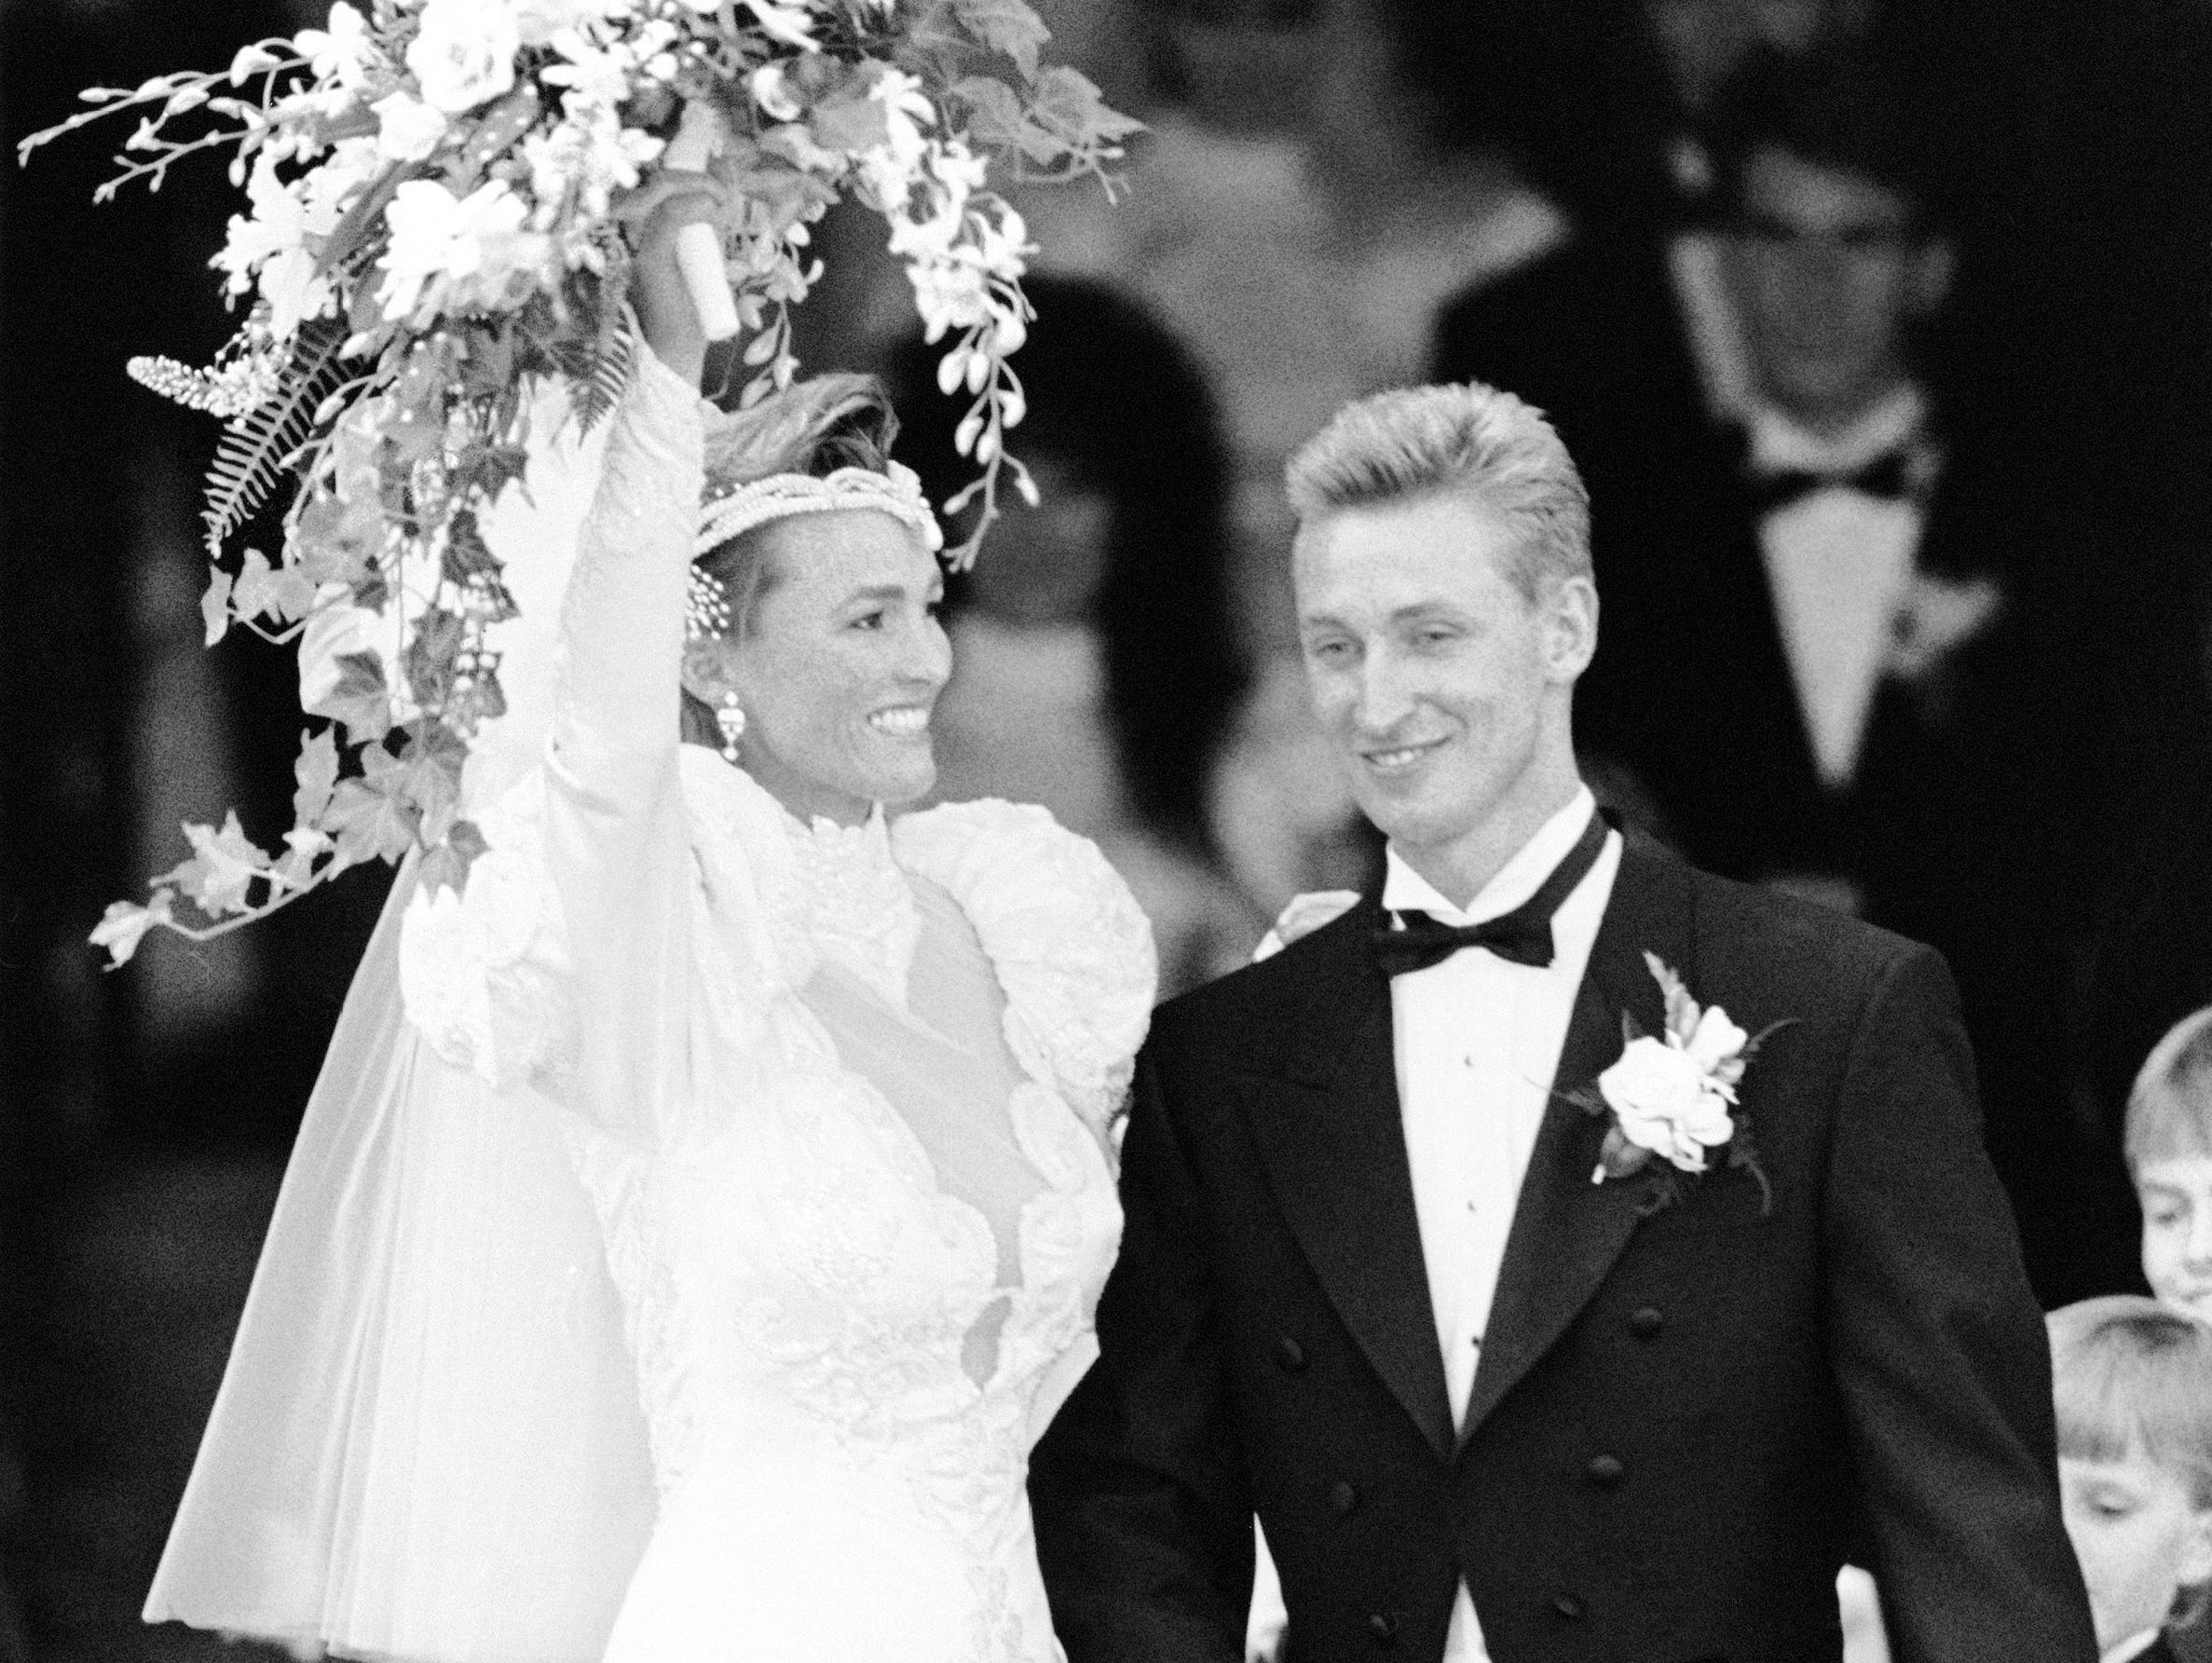 That July, Gretzky had married actress Janet Jones in Canada's version of a royal wedding. A little more than three weeks later, he was traded.